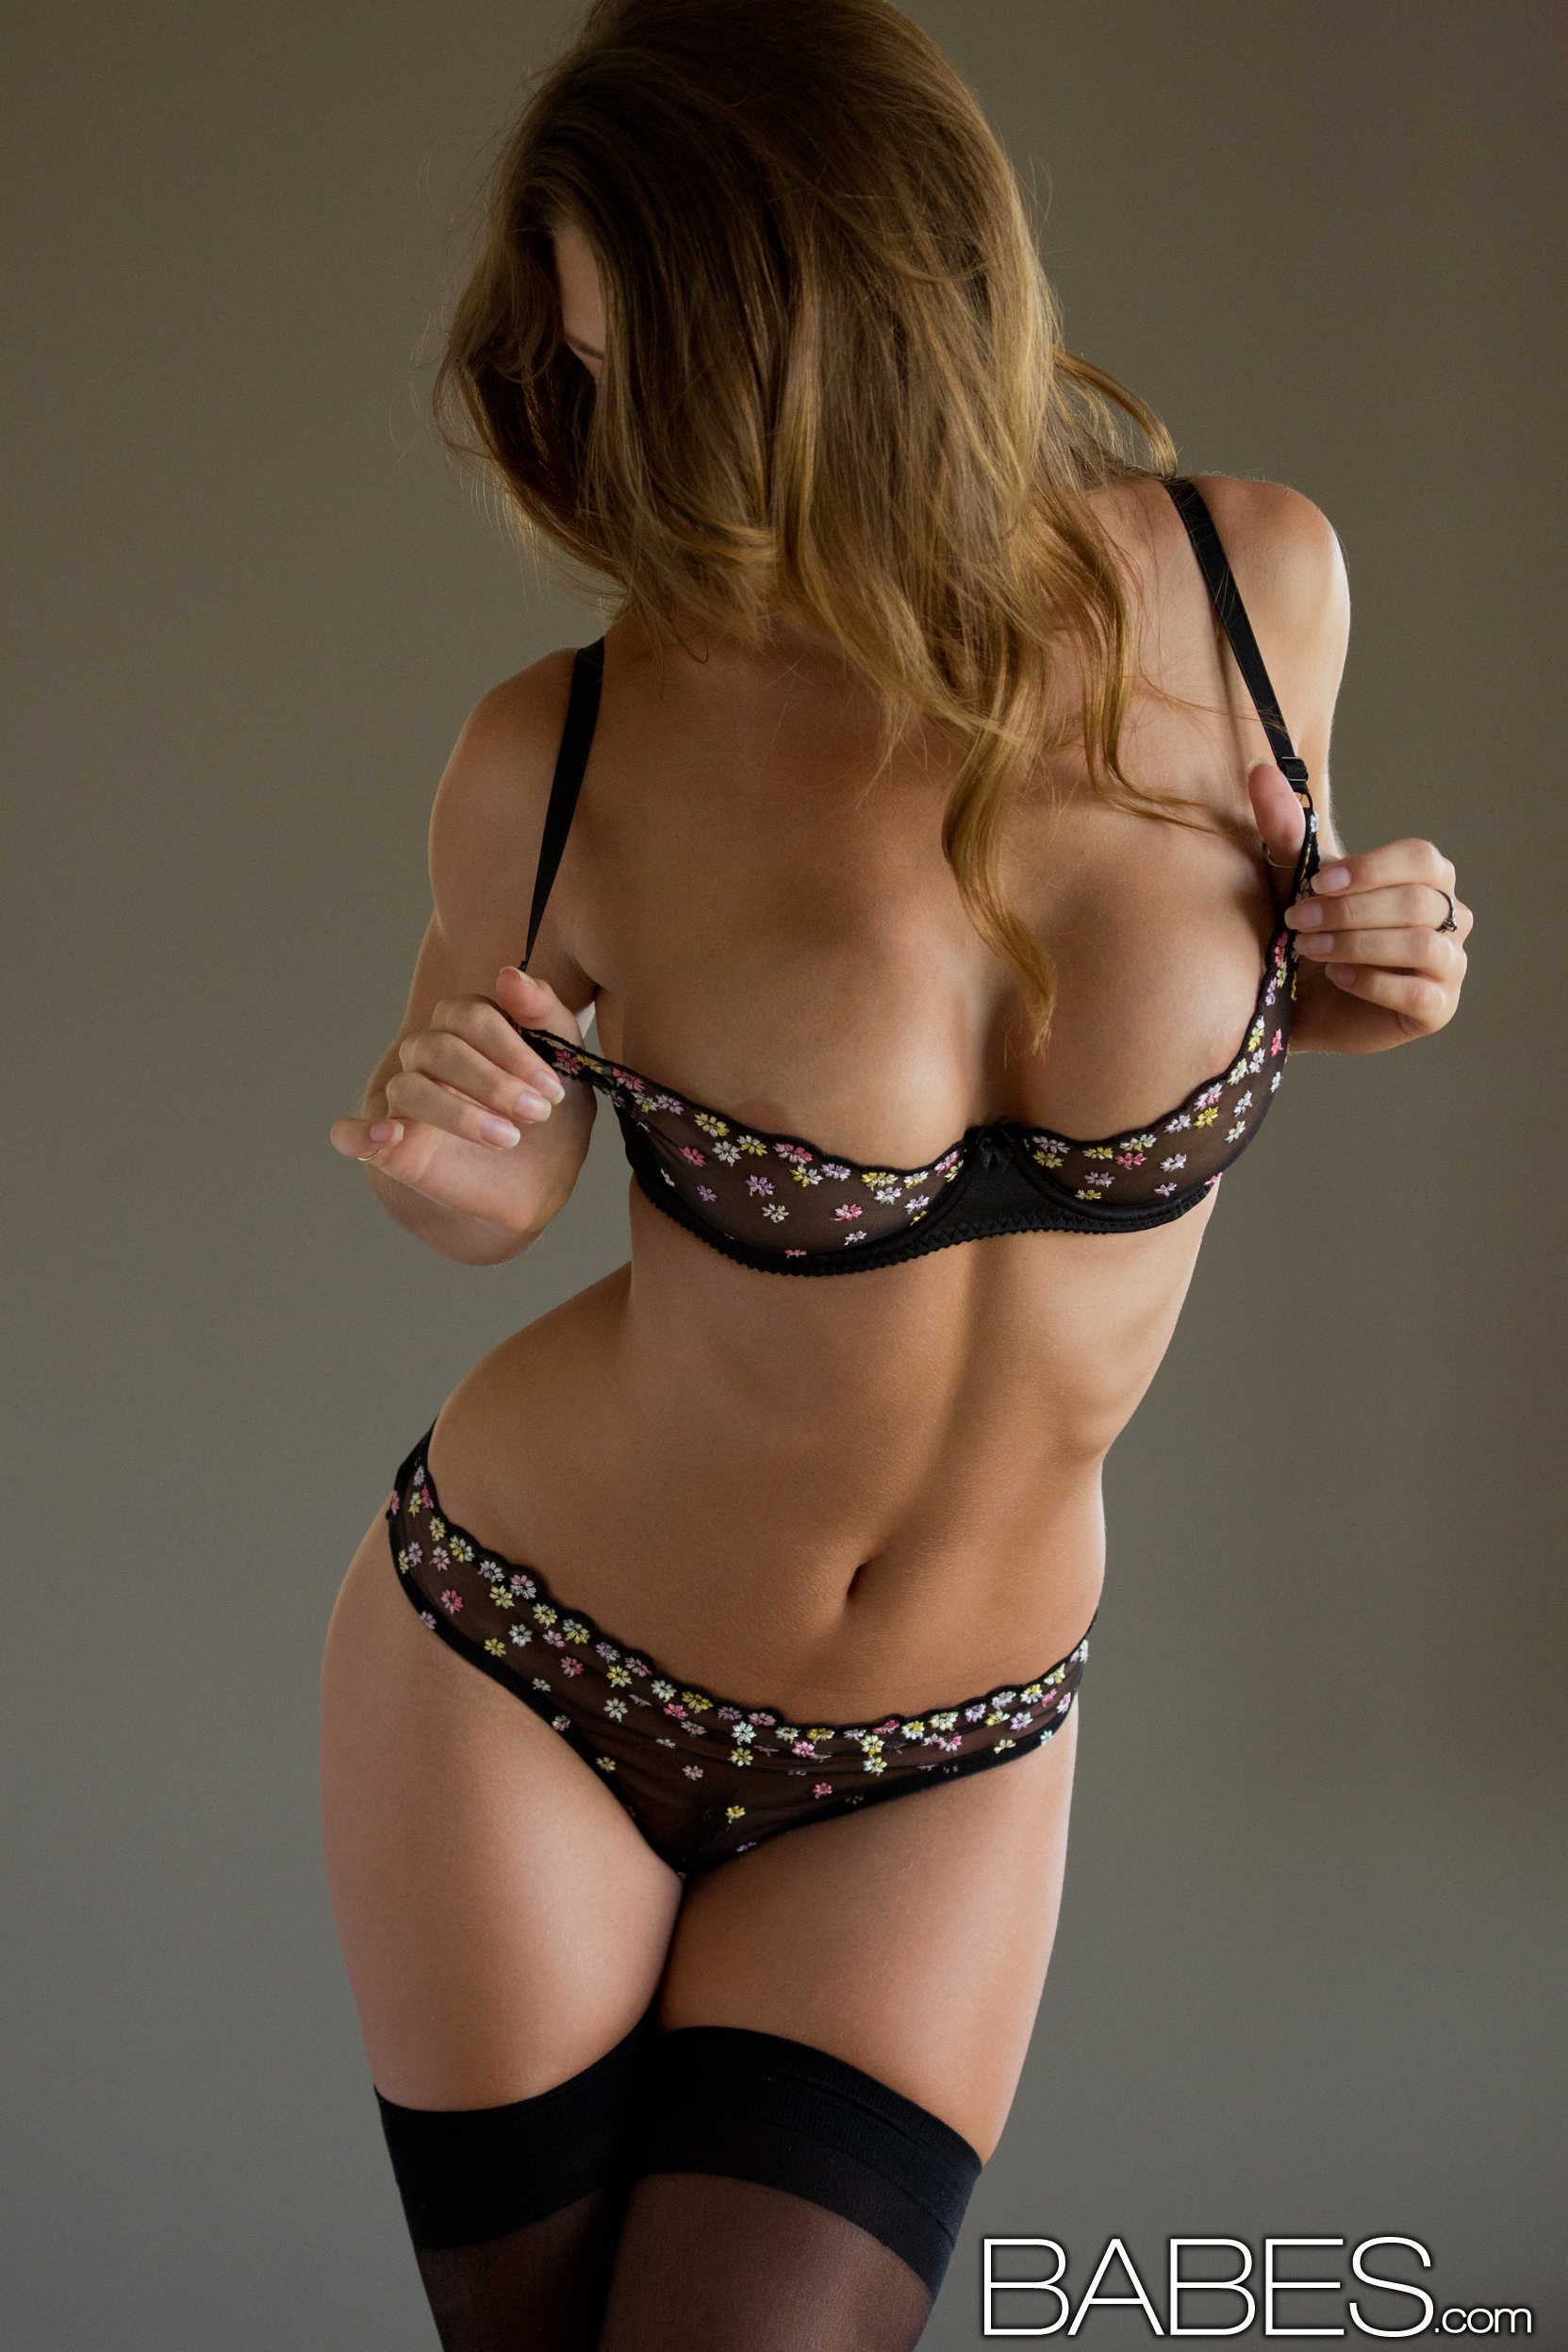 Amber sym has a perfect body and is beautiful in every way - 3 part 8